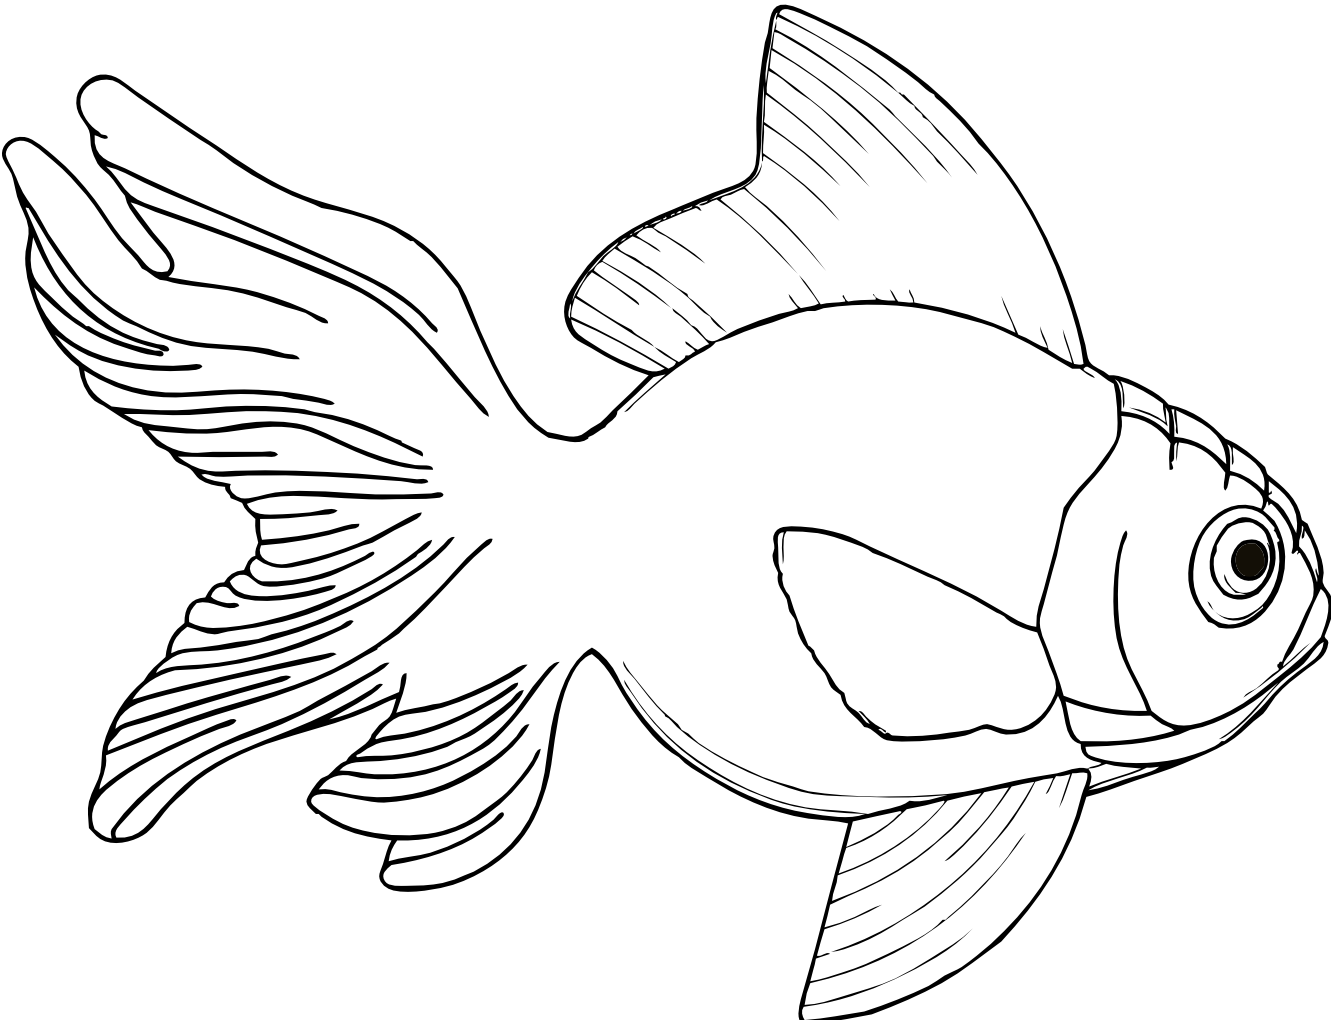 Line Drawing Pictures : Fish drawing images clipart best